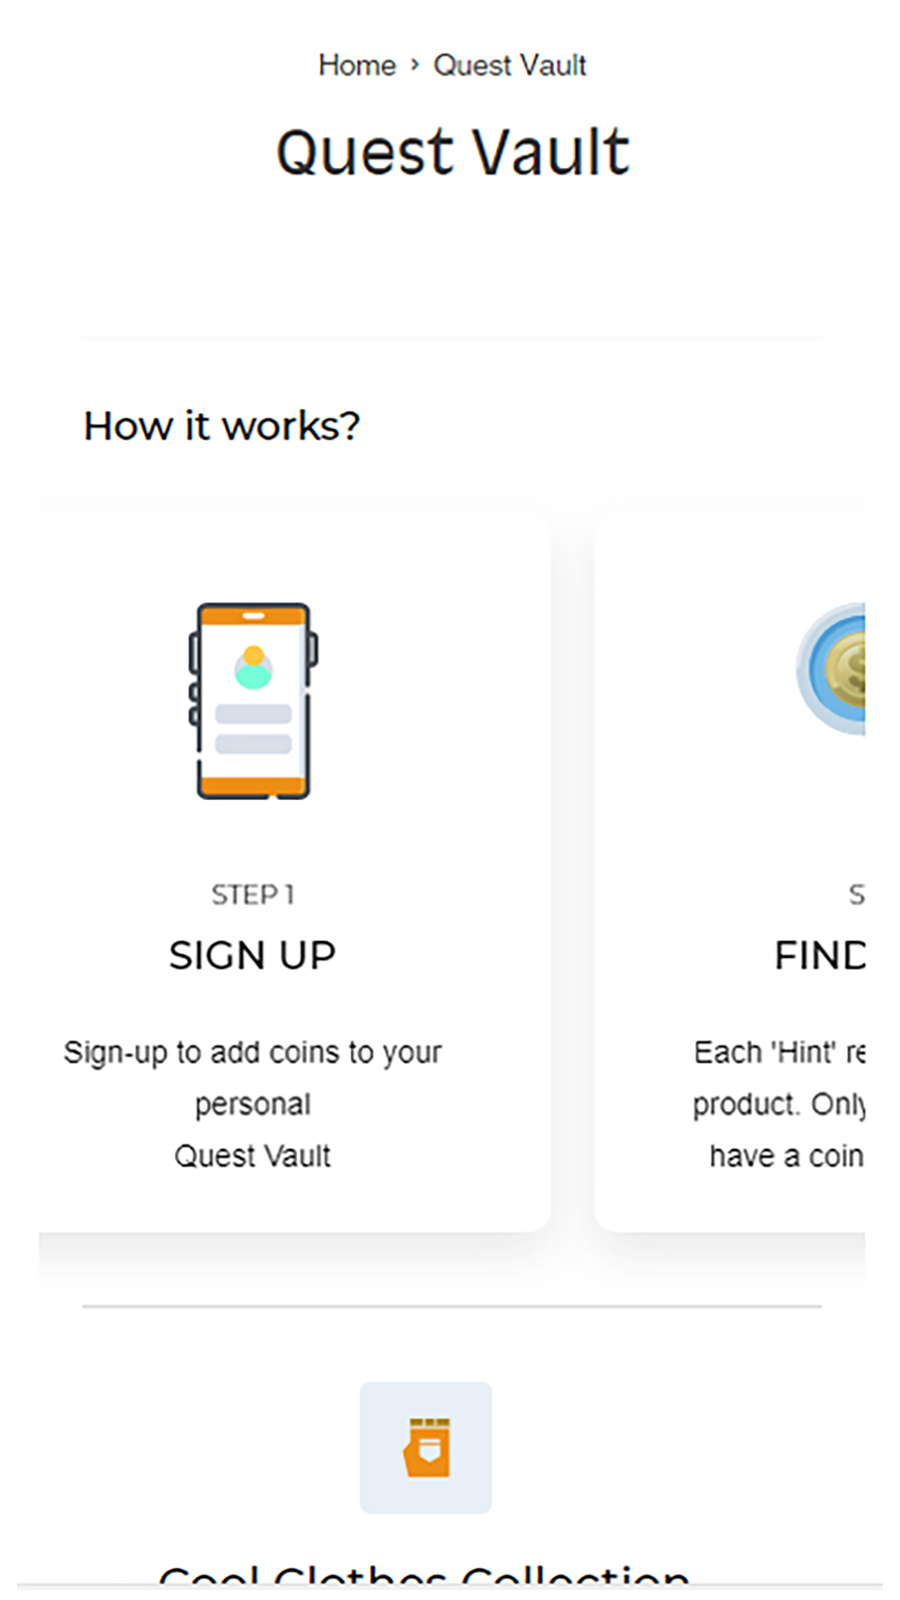 """Each visitor receives a """"Quest Vault"""""""